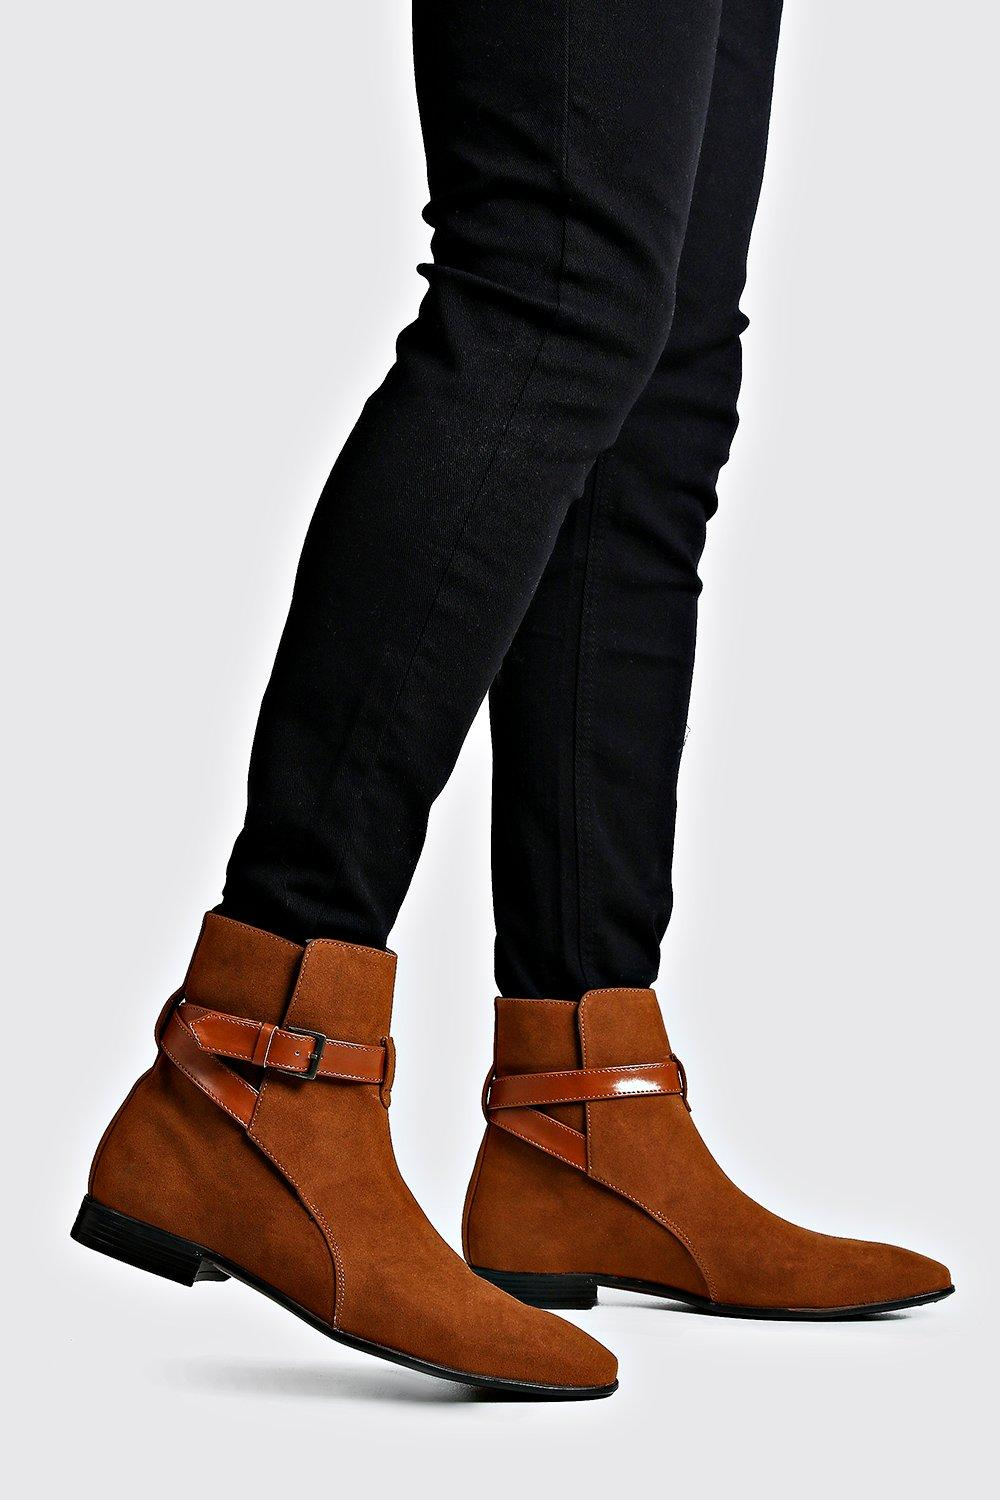 mens wrap around faux suede chelsea boots - brown